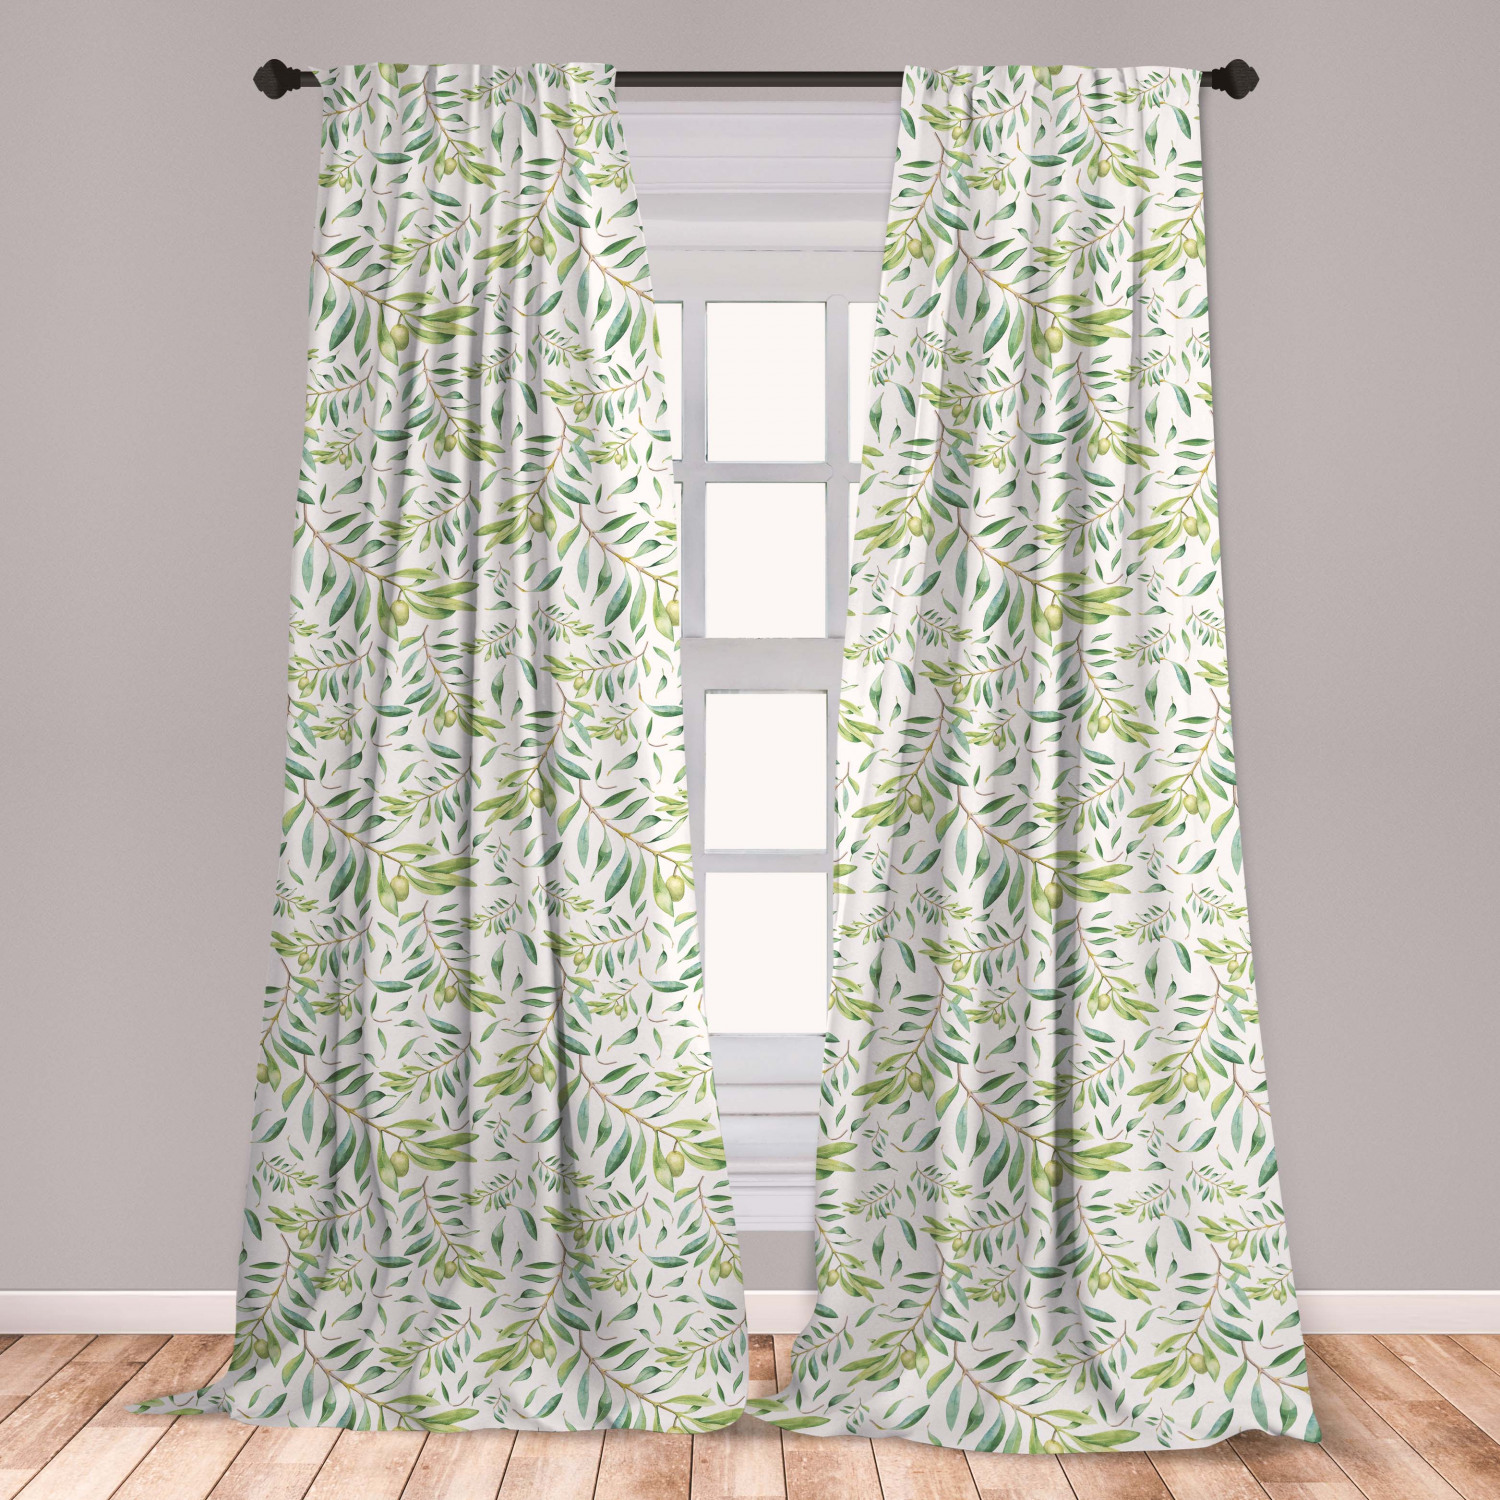 Green Leaf Curtains 2 Panels Set Watercolor Style Olive Branch Mediterranean Tree Organic Window Drapes For Living Room Bedroom Avocado Green By Ambesonne Walmart Com Walmart Com